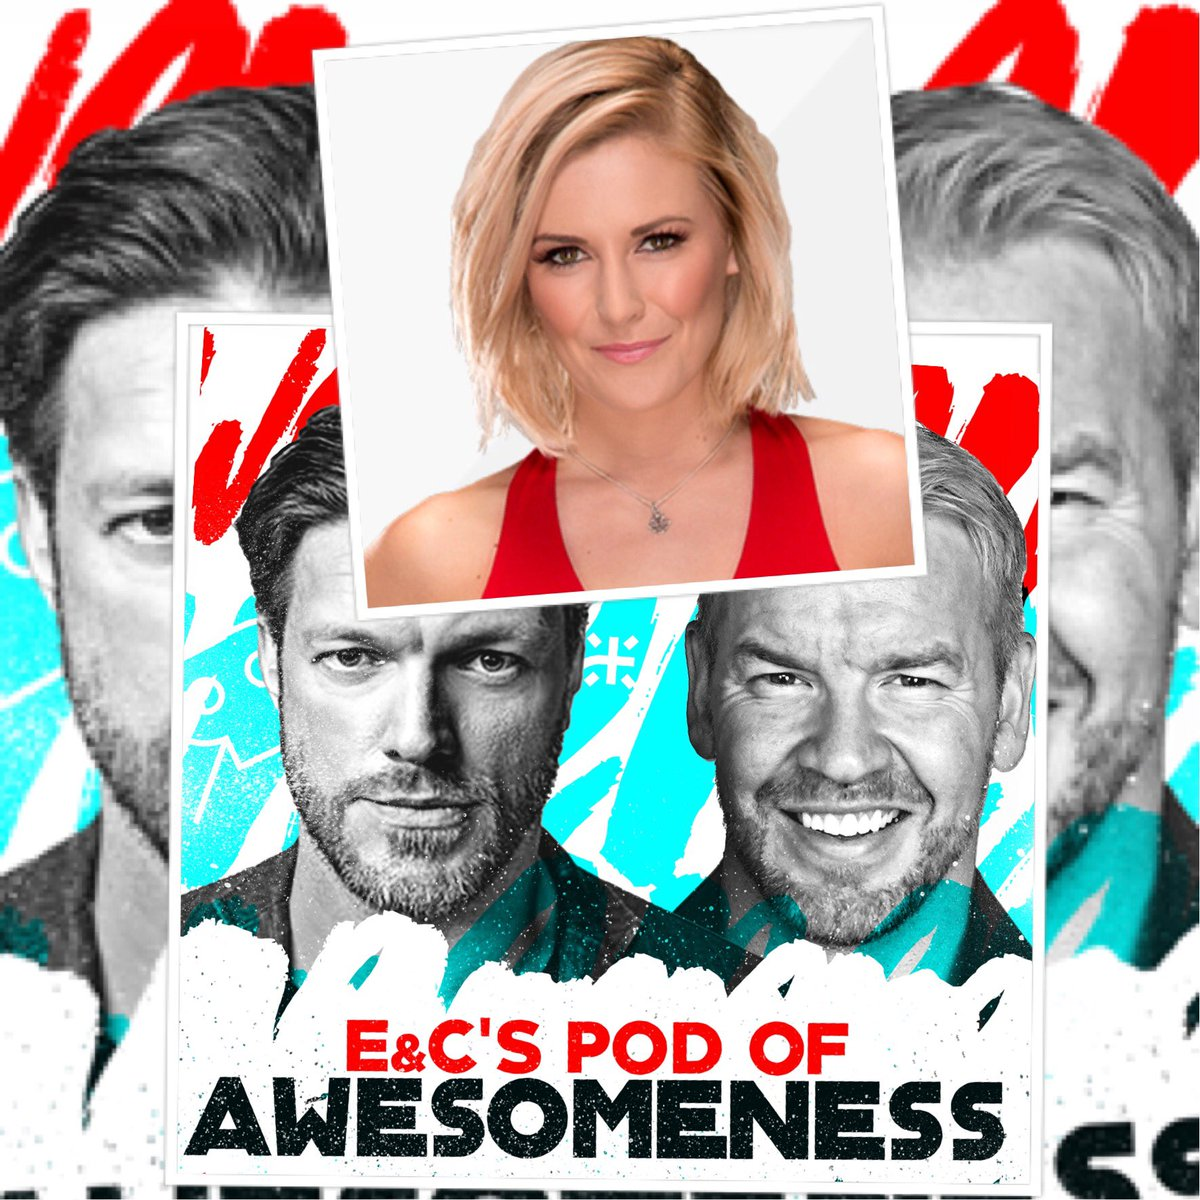 Tomorrow on @EandCPod we have @ReneeYoungWWE aka Sterling who pontificates on problems in the pond, the PECR Quad Pod, ketchup chips, hickory sticks, sunshine and strip malls. Although it may not necessarily sound like it, it's a helluva fun show. Plus @THETOMMYDREAMER in person